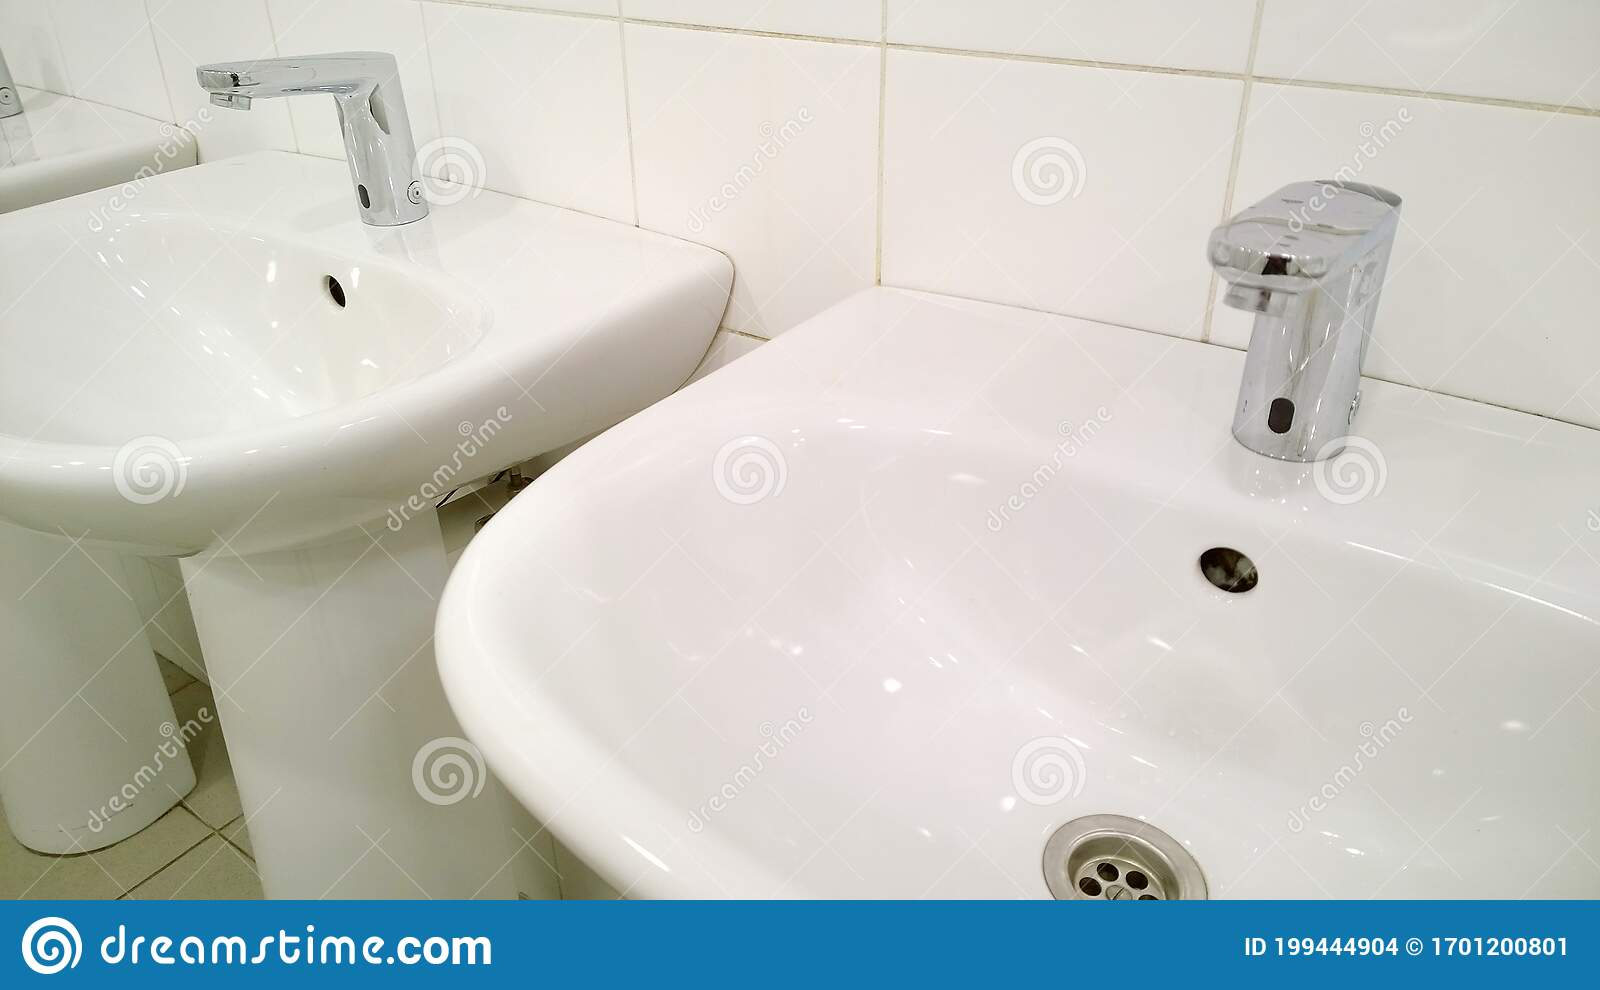 pattern of modern bathroom sink and faucet in public toilet and restroom touchless taps virus protection concept sanitary rules stock photo image of hygienic center 199444904